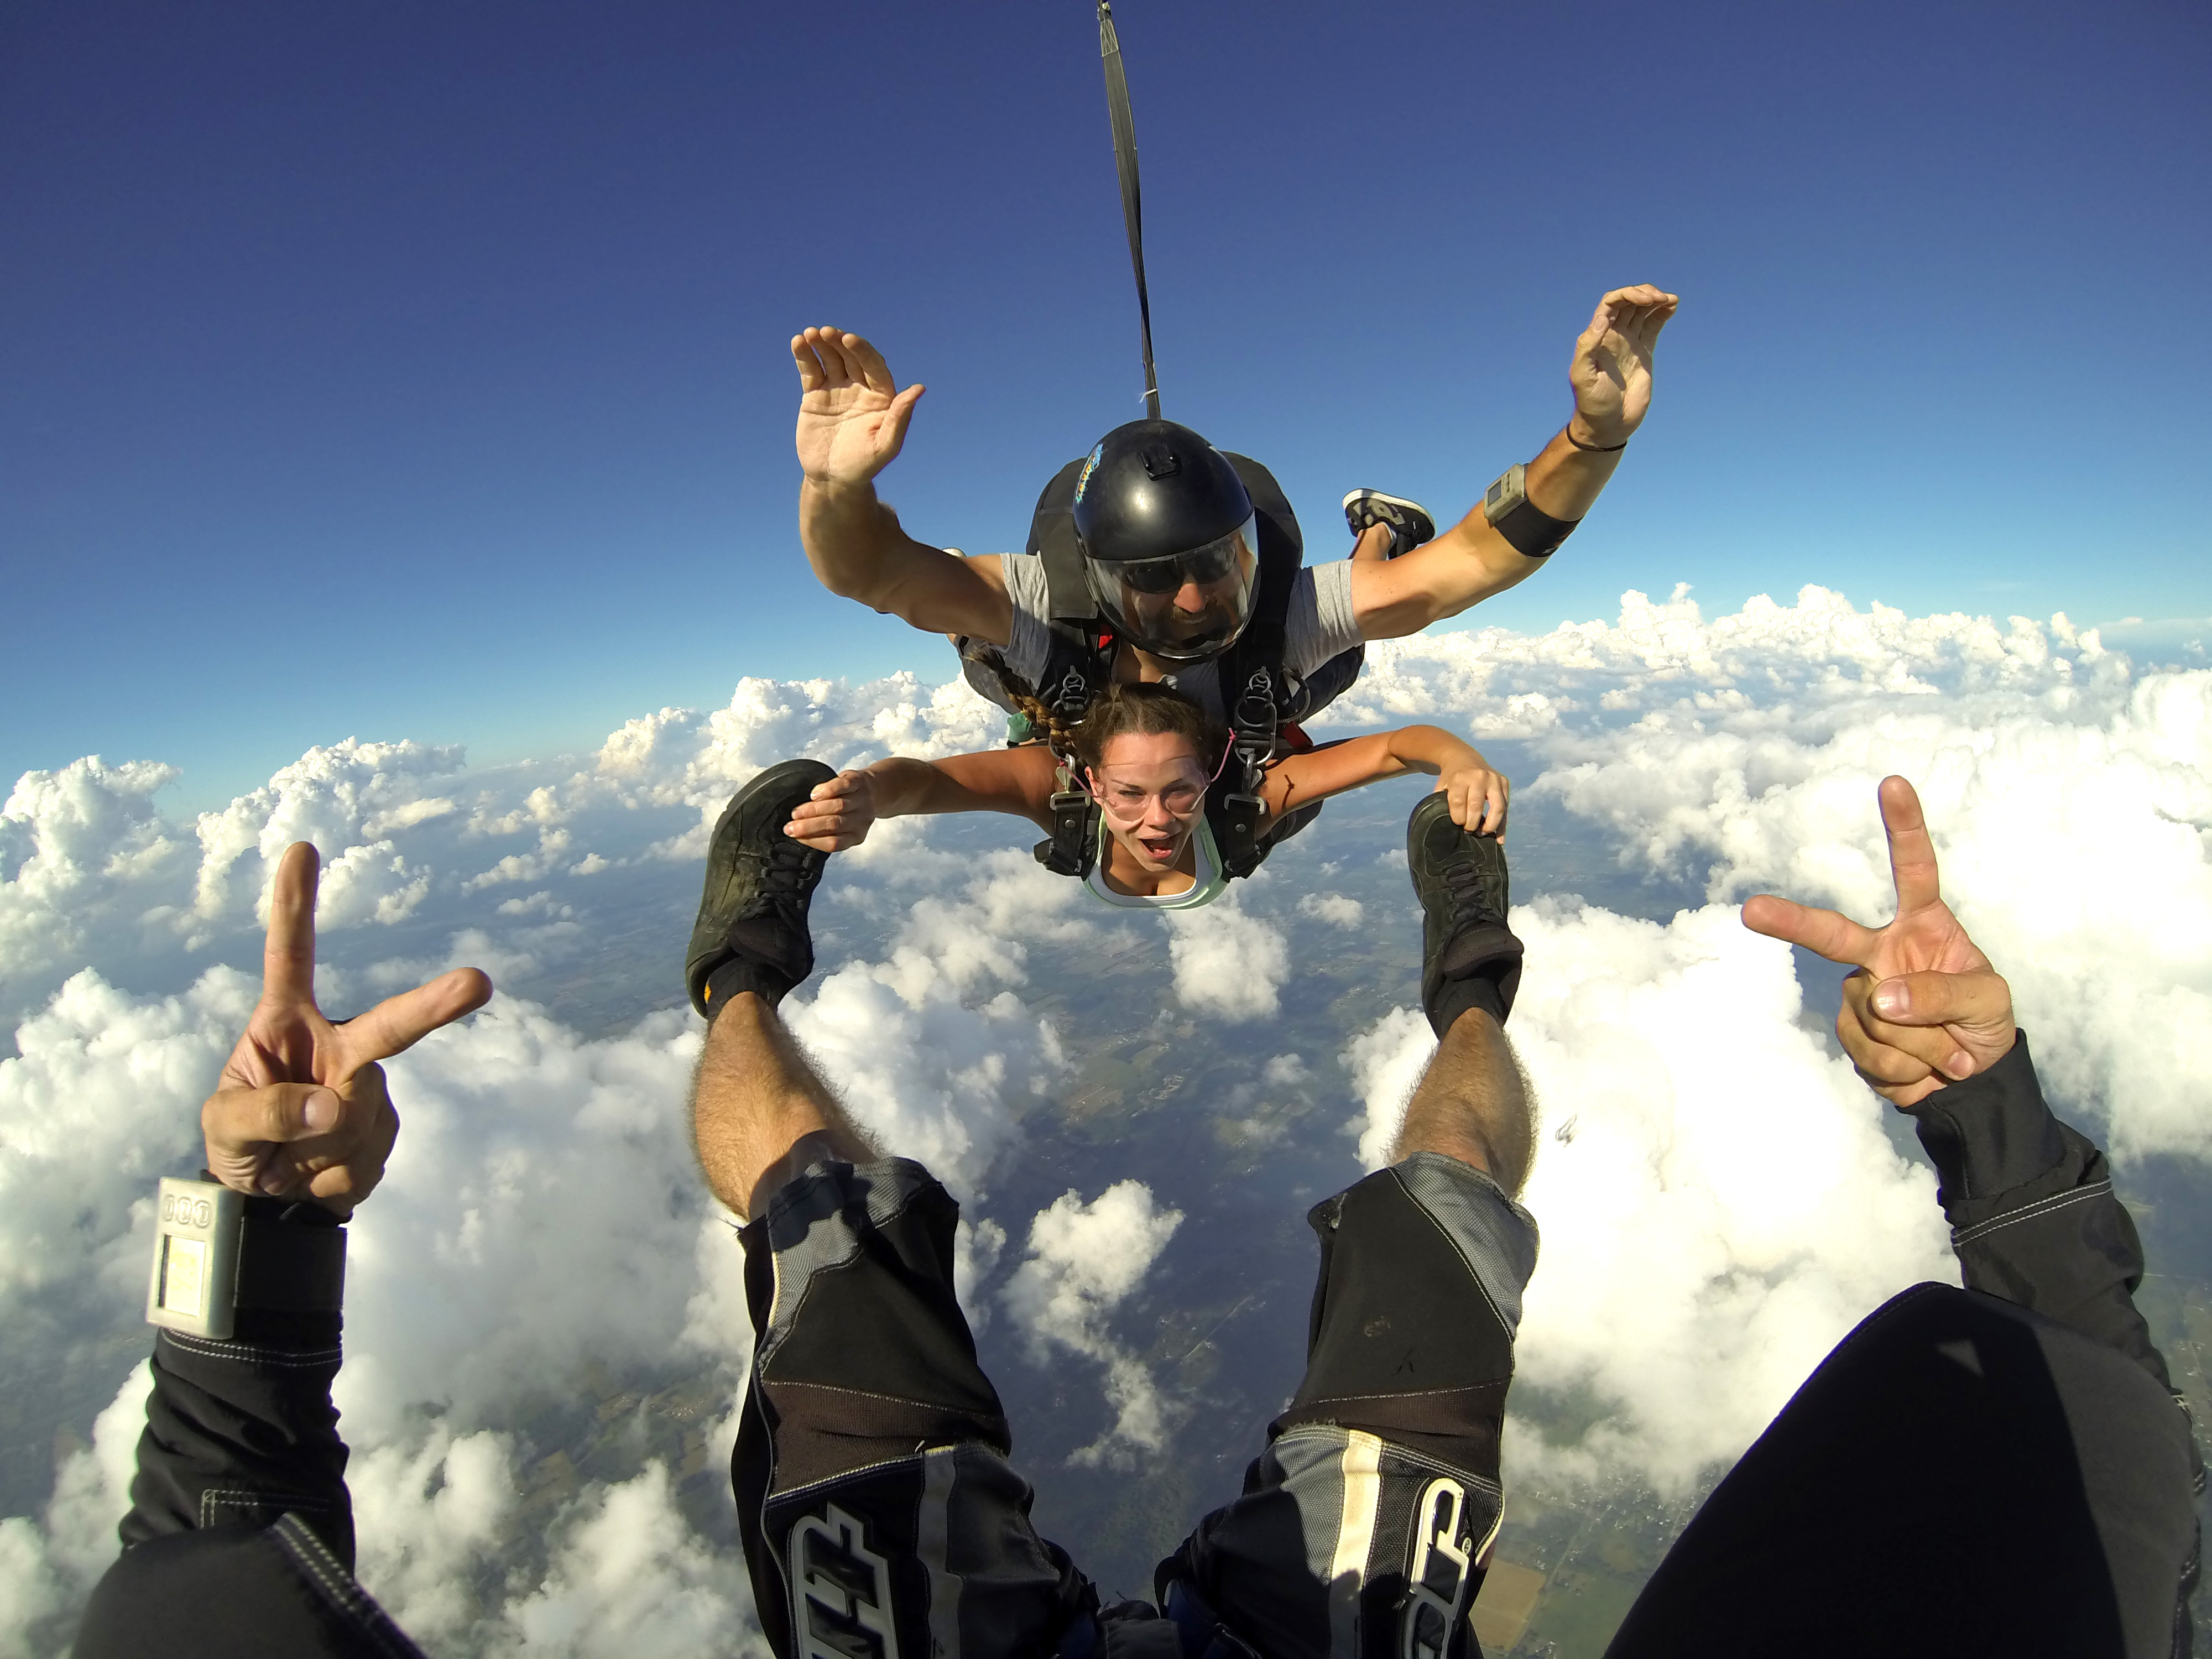 A tandem student grabs the feet of her videographer while in free fall